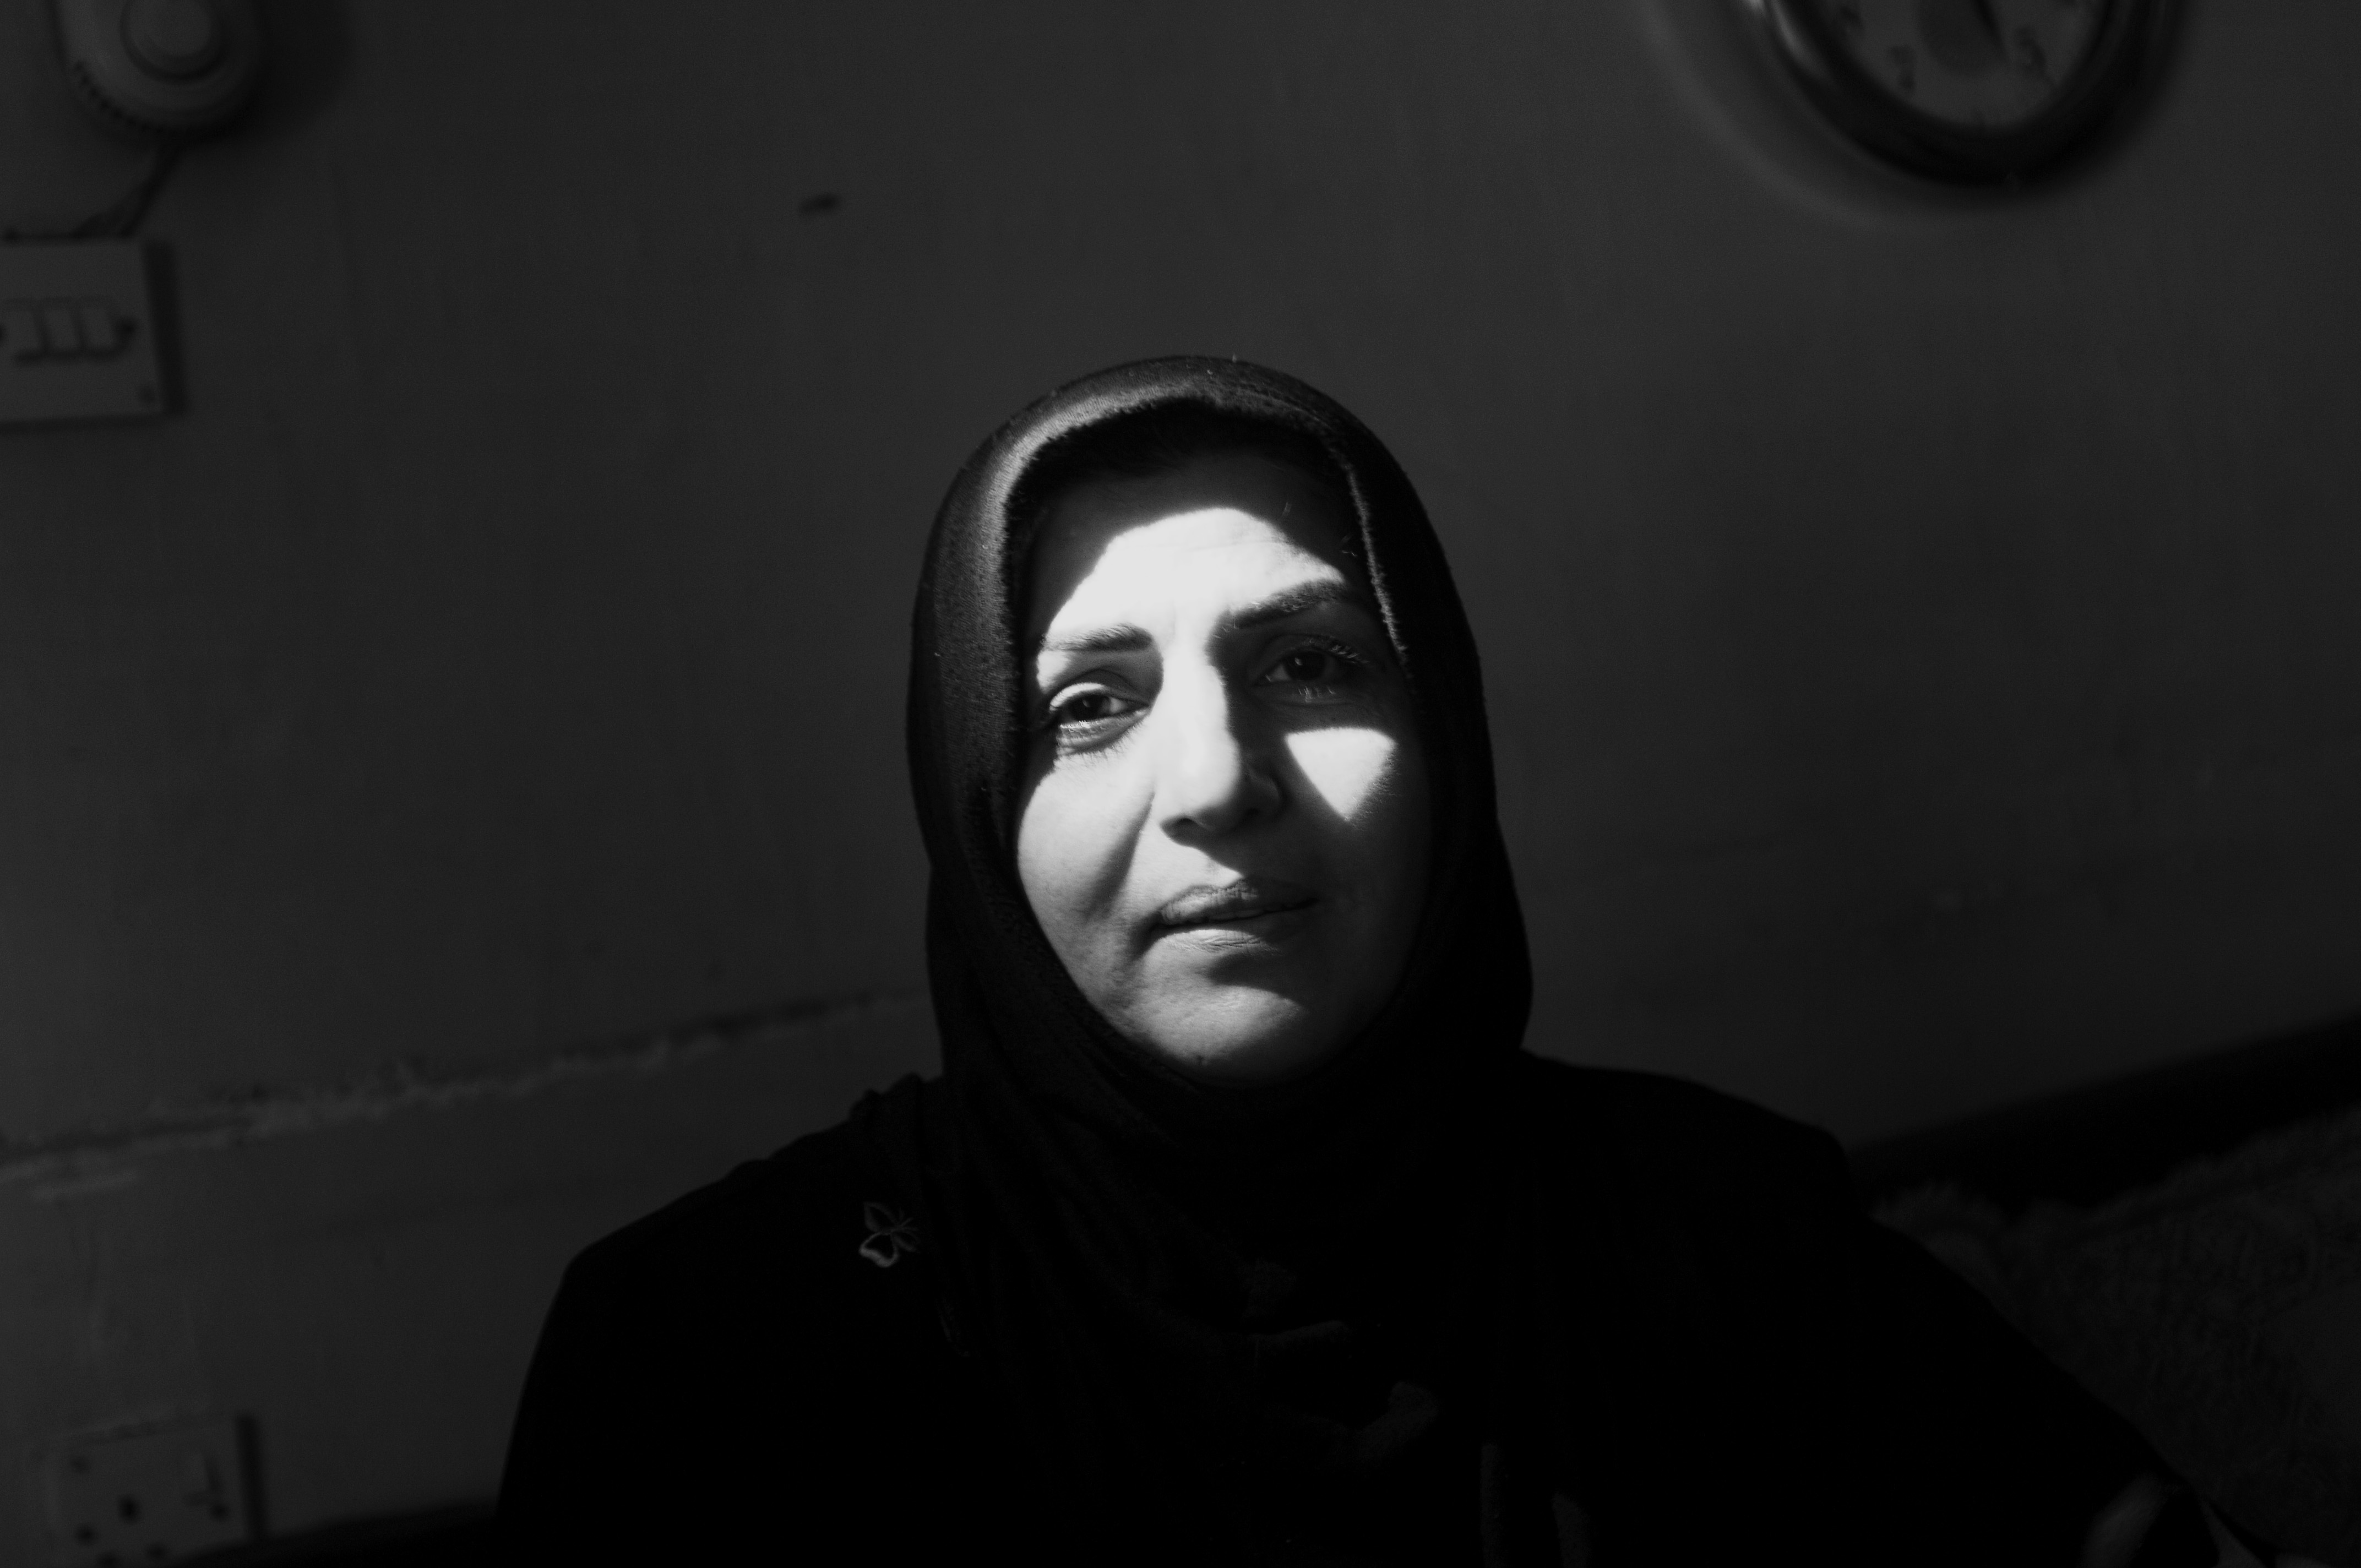 A Shi'ite woman in her home, Baghdad Feb.15, 2007. Where Iraqis of different faiths once mixed and lived next to each other, as the country erupted into civil war, people of different faiths rarely associated with former neighbors.